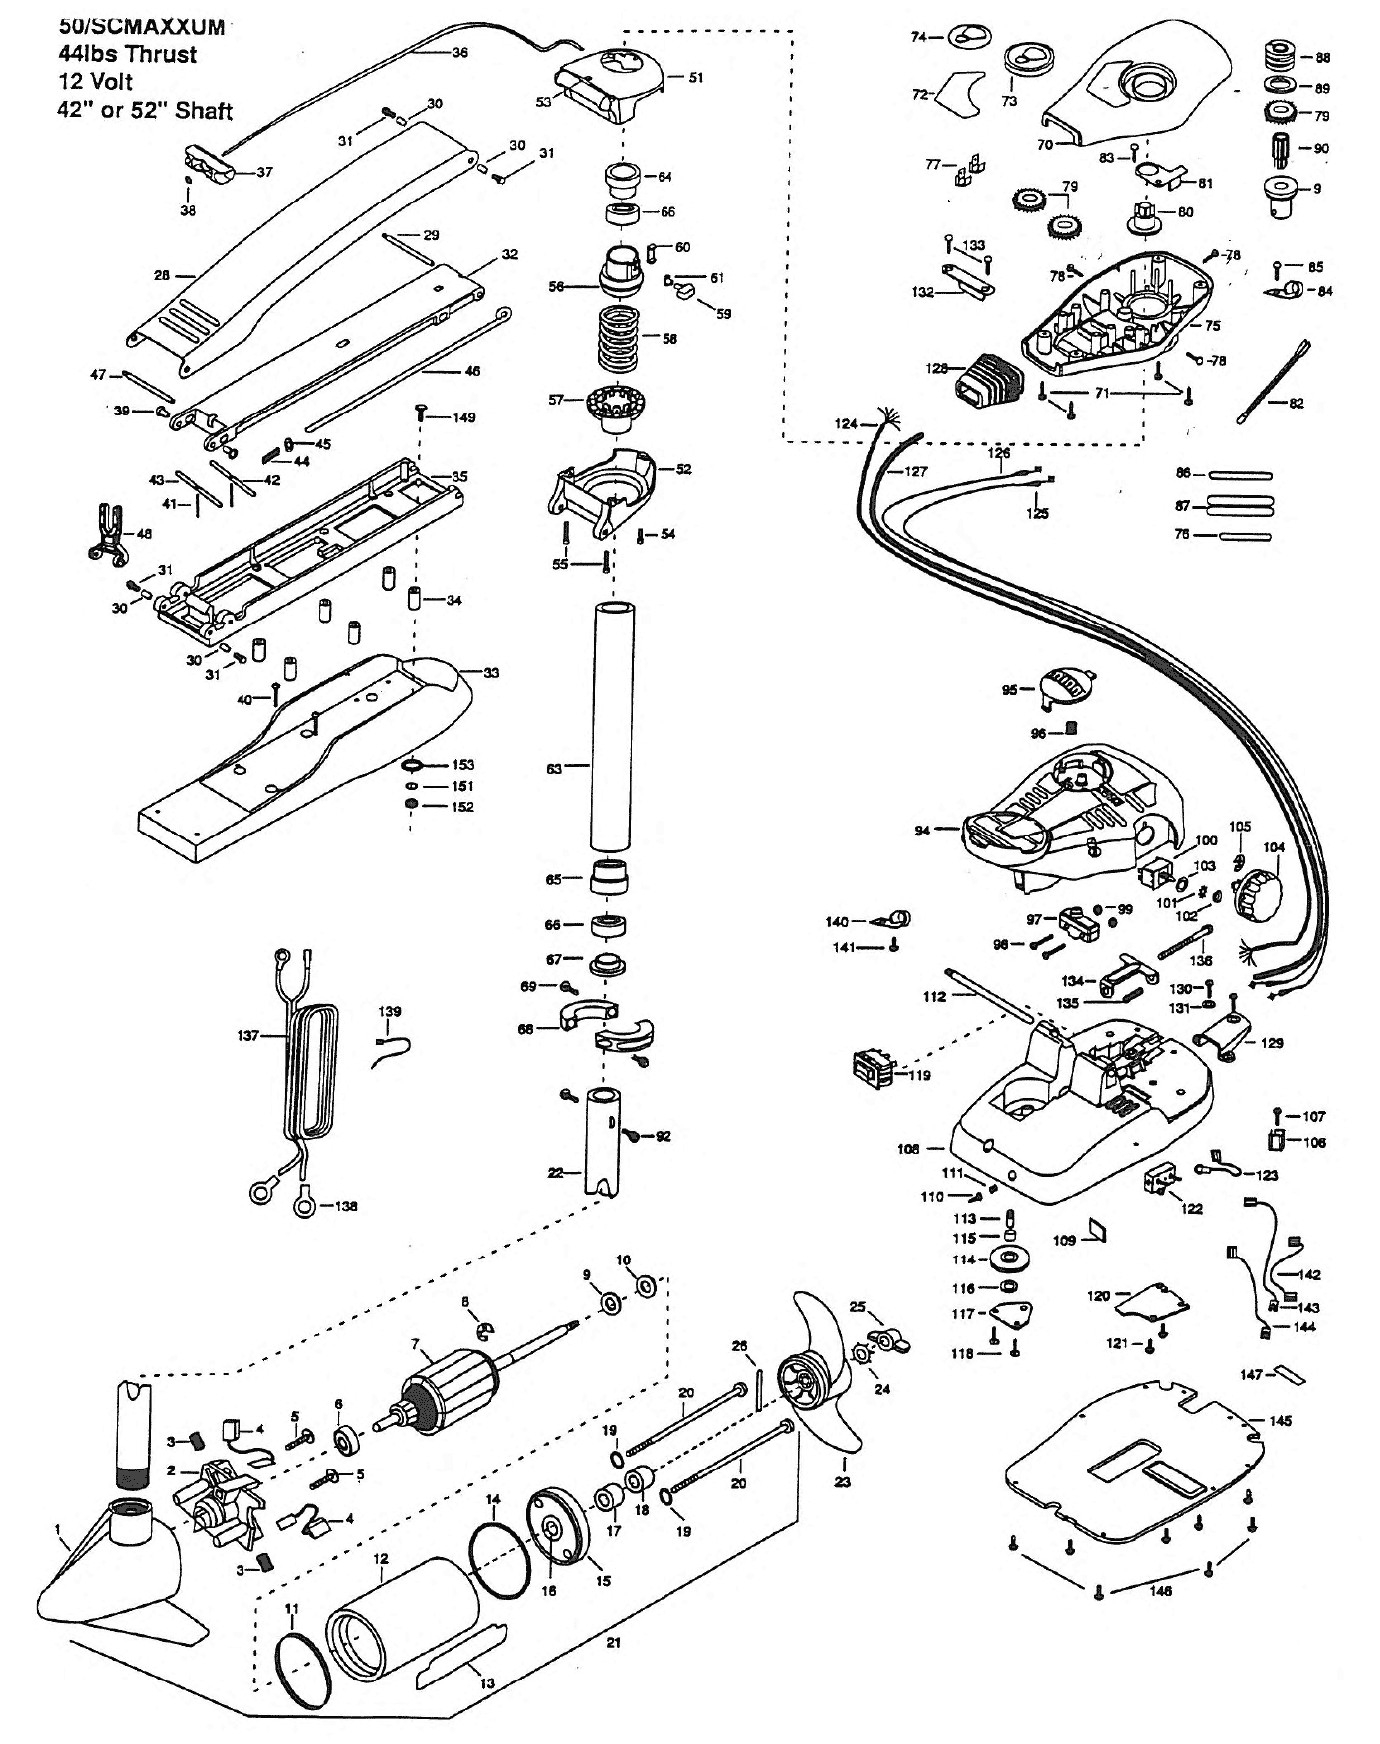 Wiring Diagram All Boats Motor Repalcement Parts And Diagram